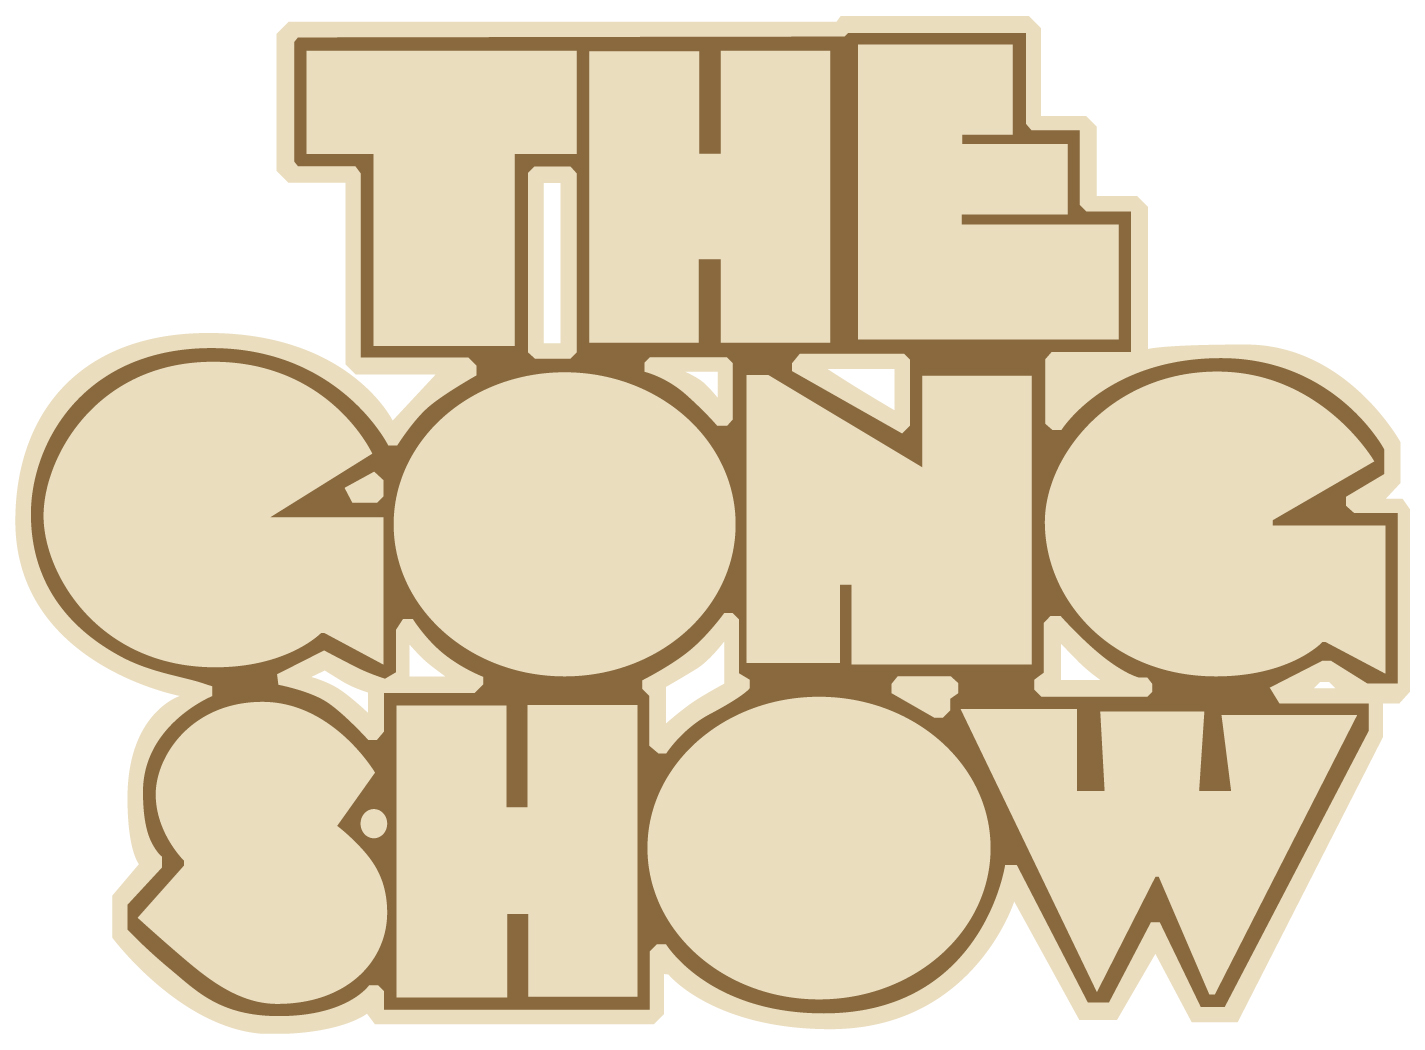 The Gong Show [TV Series]